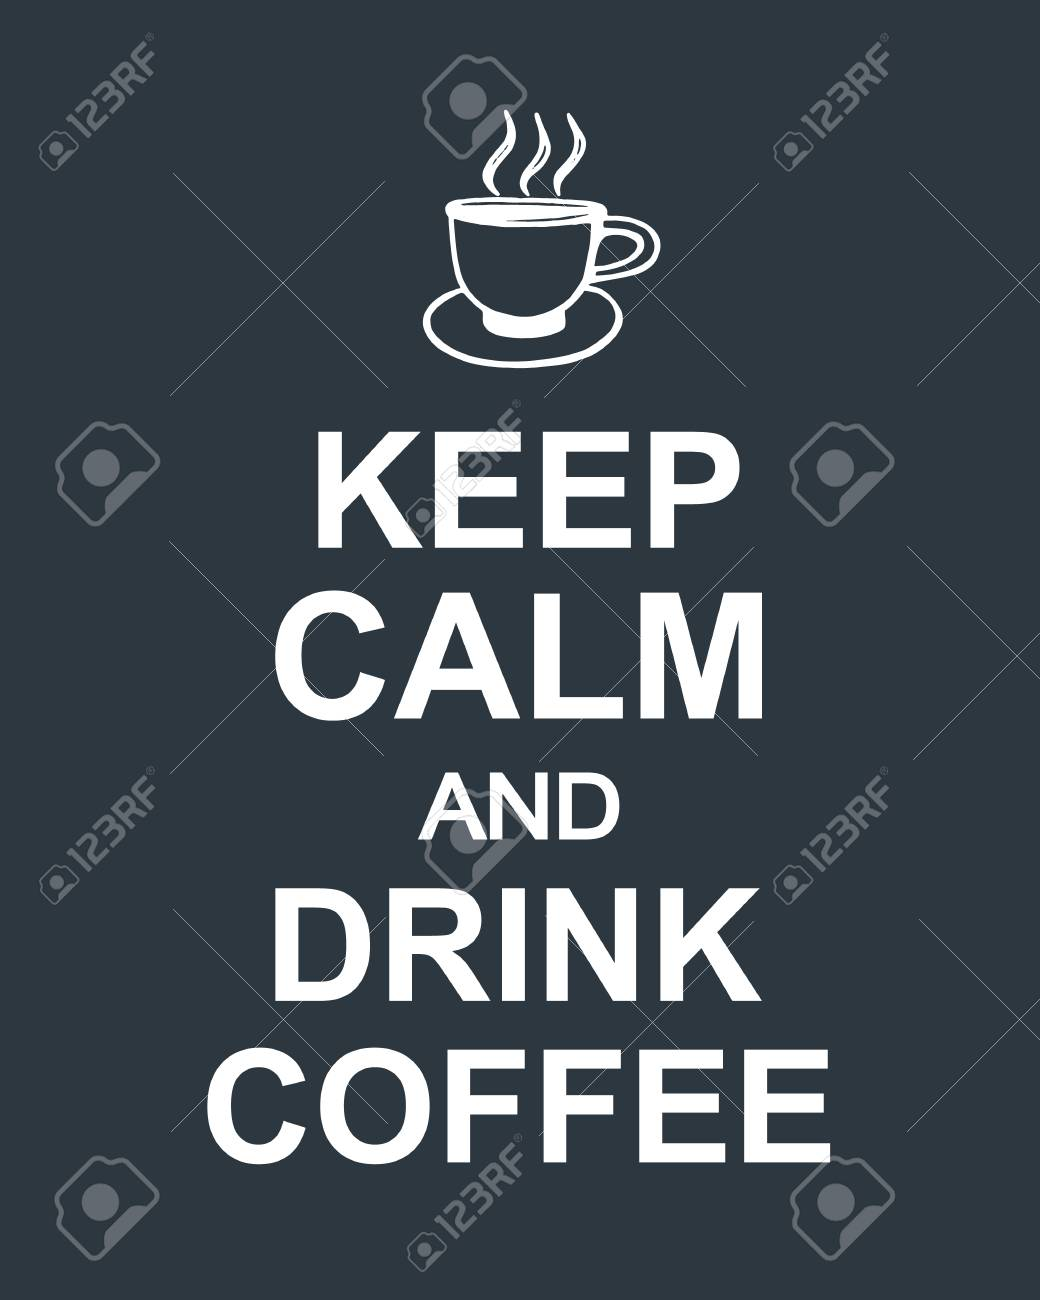 Keep Calm And Drink Coffee quote on dark background - 88986874